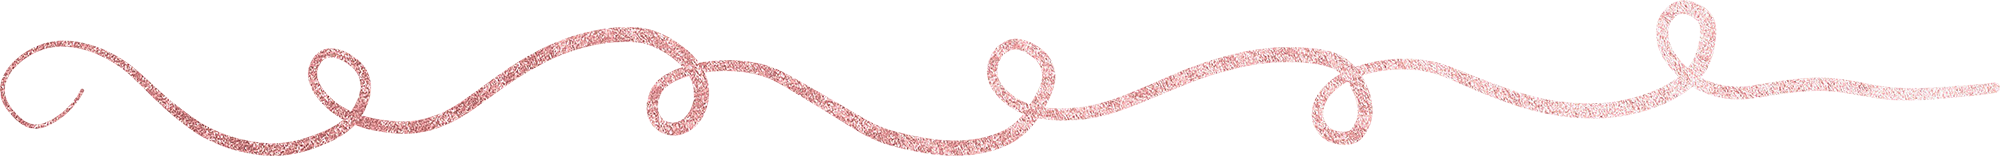 Rose Gold Swirly Border 2.png